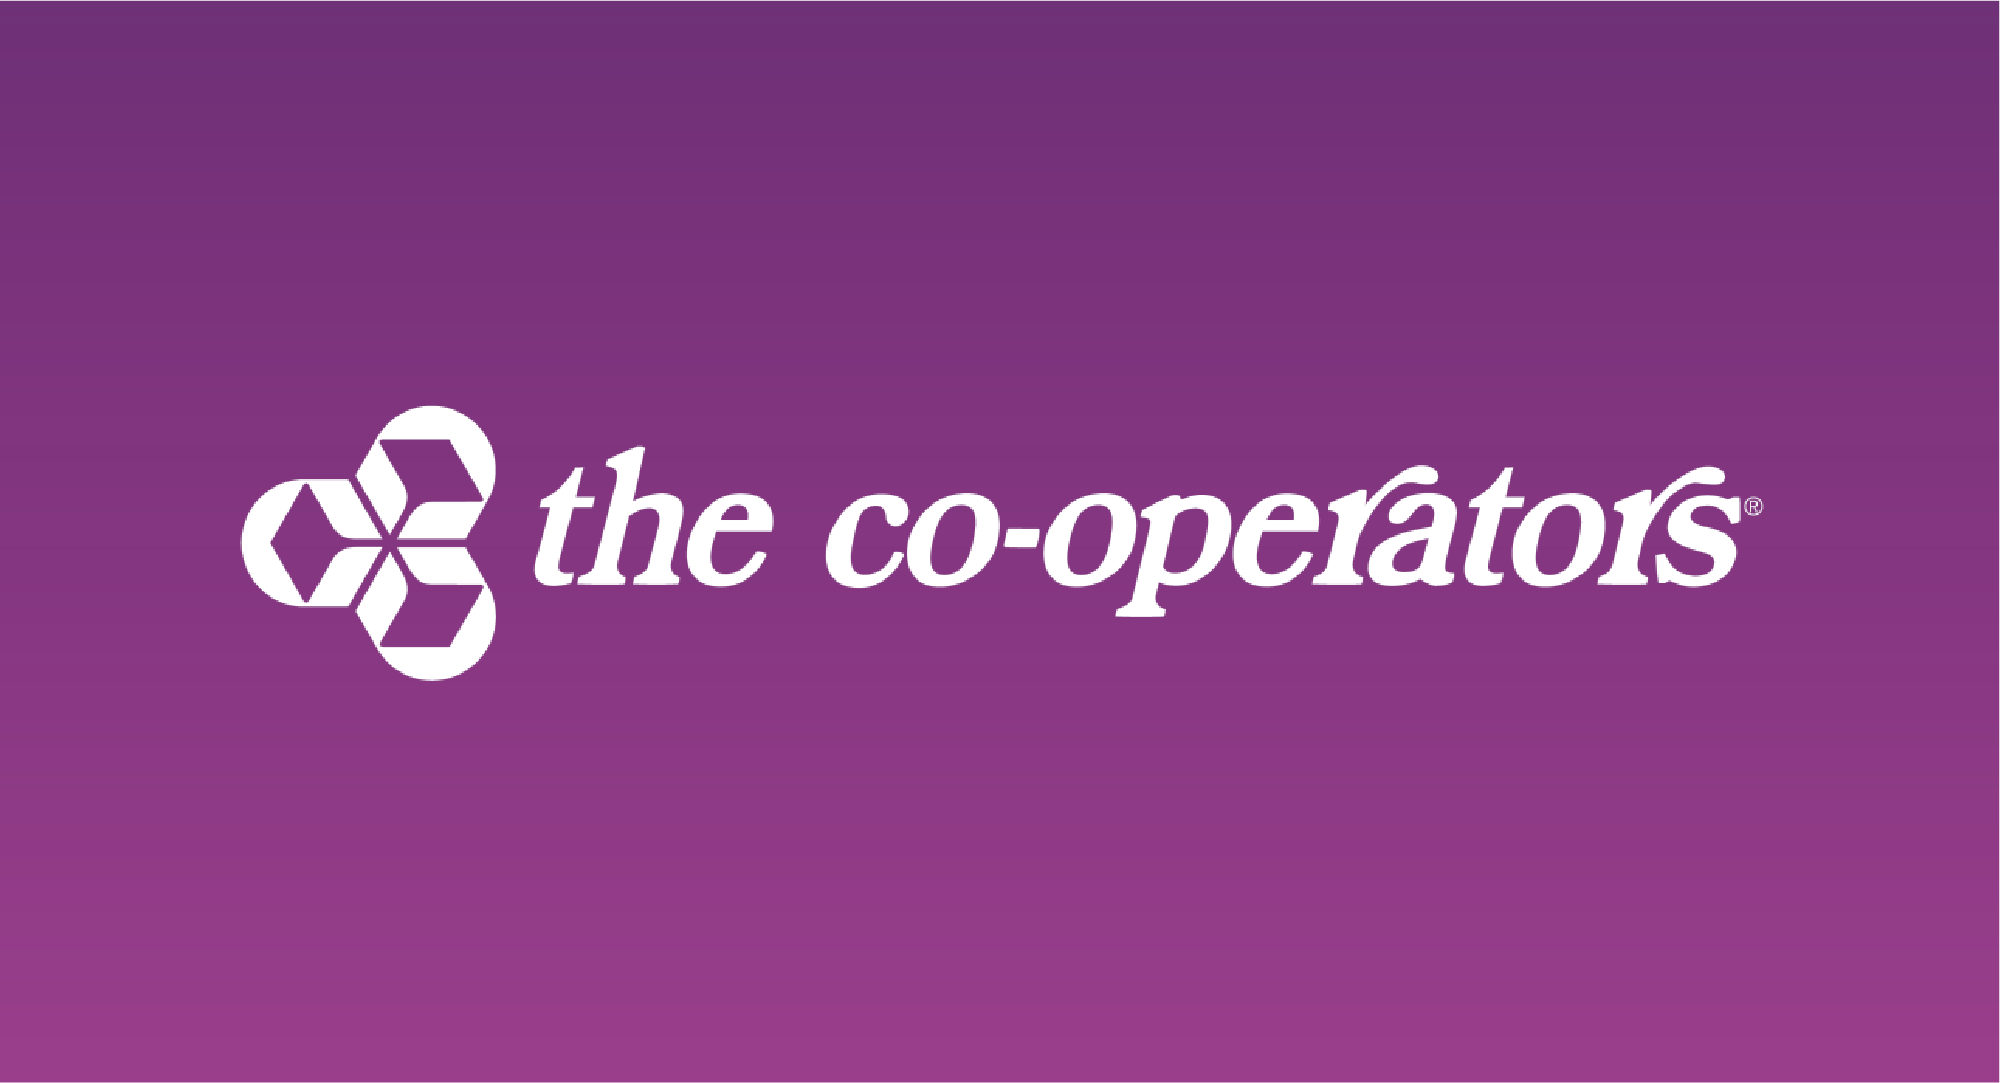 The Co-operators Modernizes Policy Communications